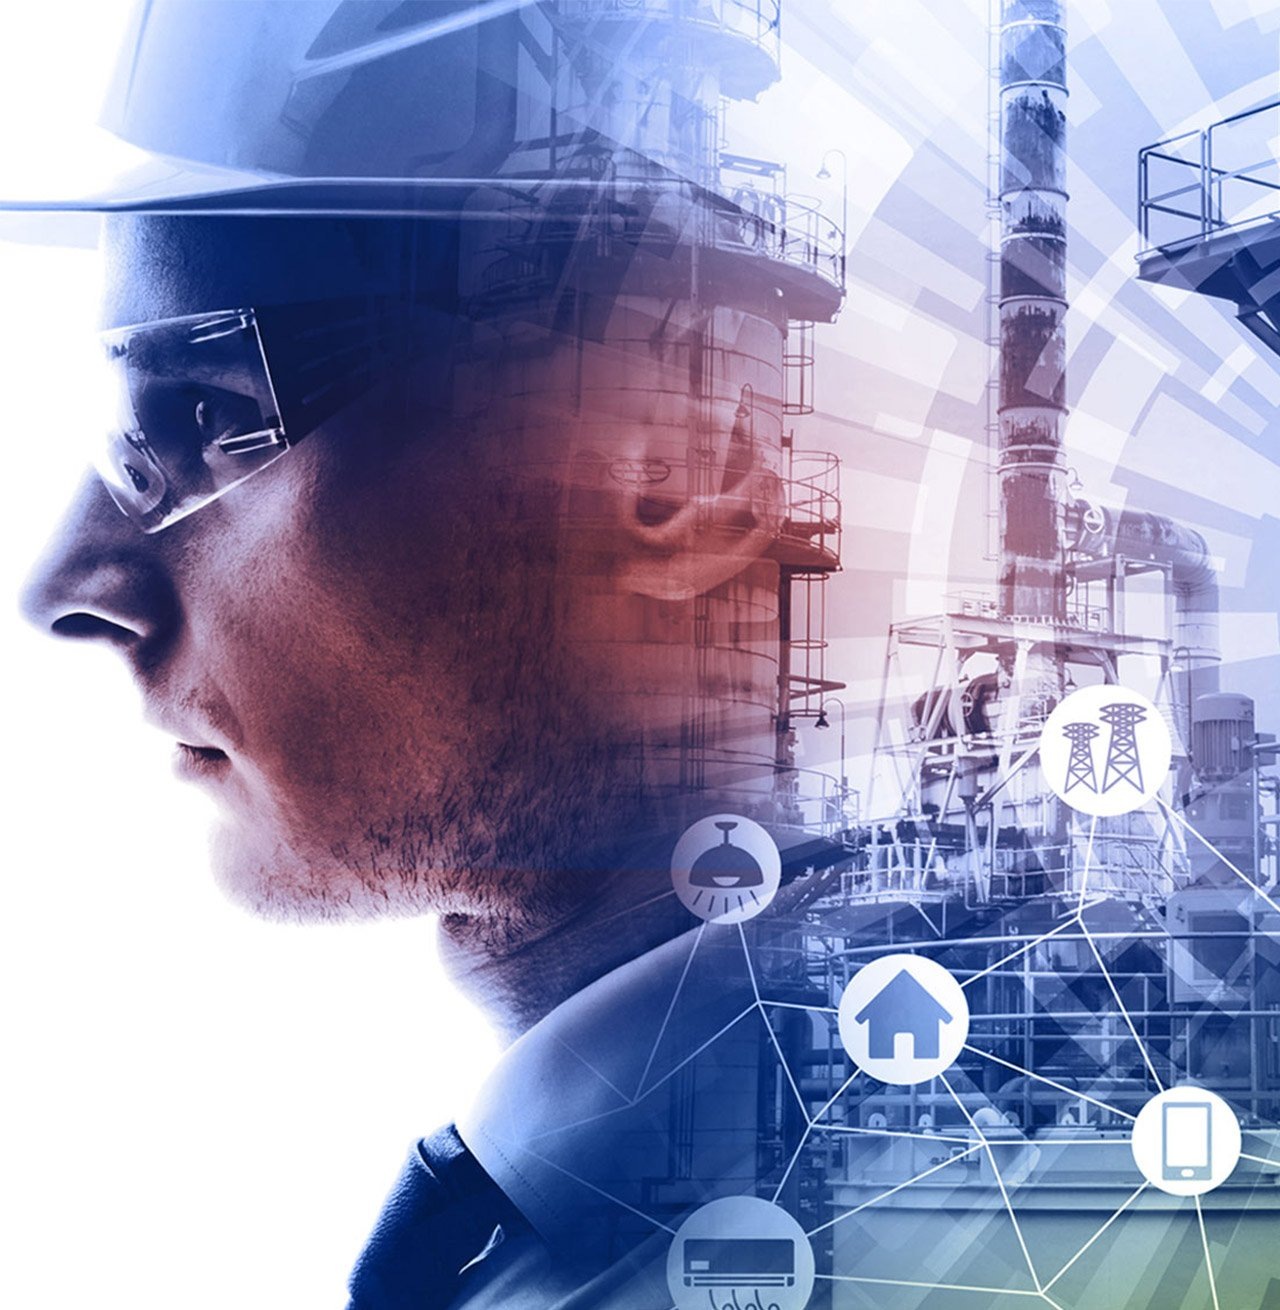 Digital montage of engineer with oil refinery and technology icons with colour overlay